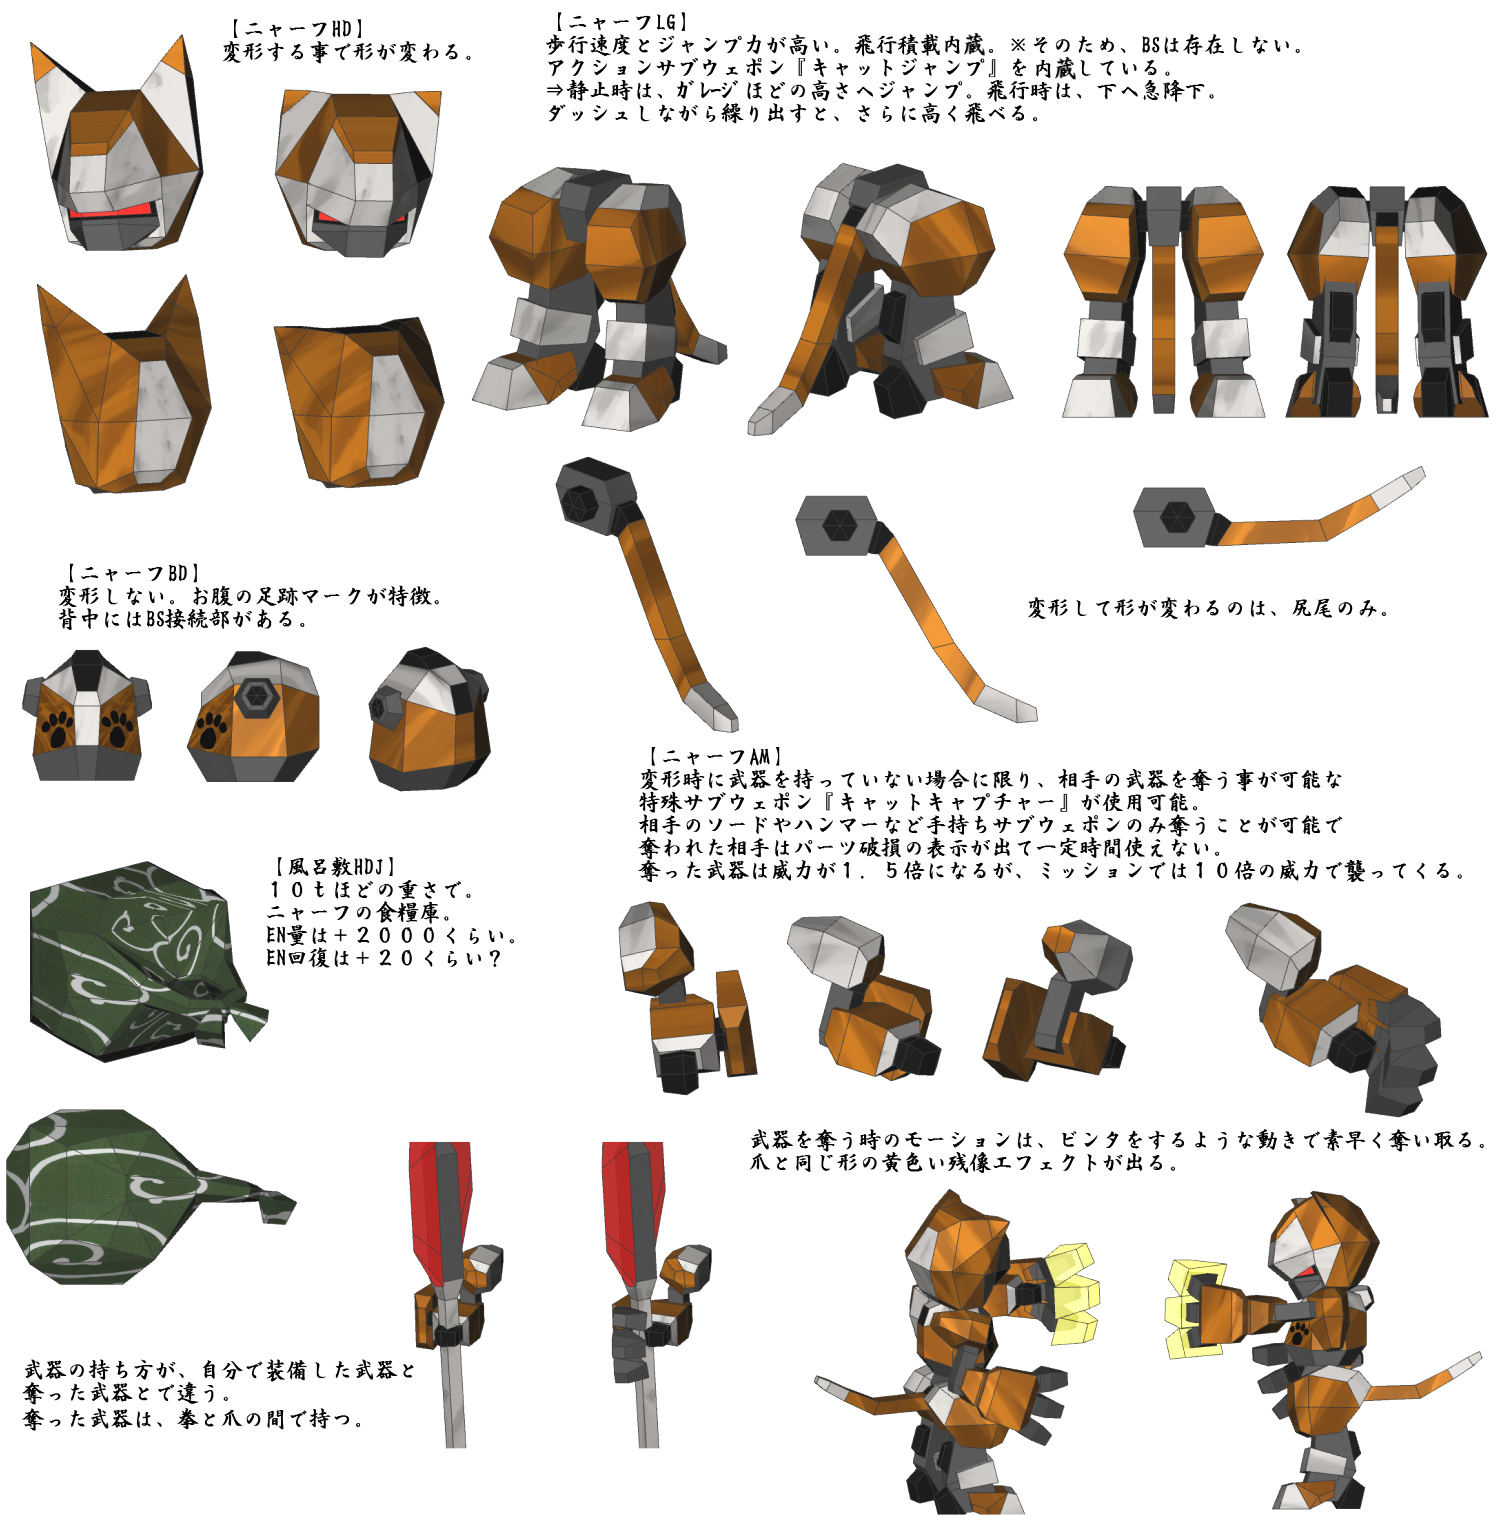 weapon and enemy design contest results Img.php?filename=tc_1339570_3_1384989229